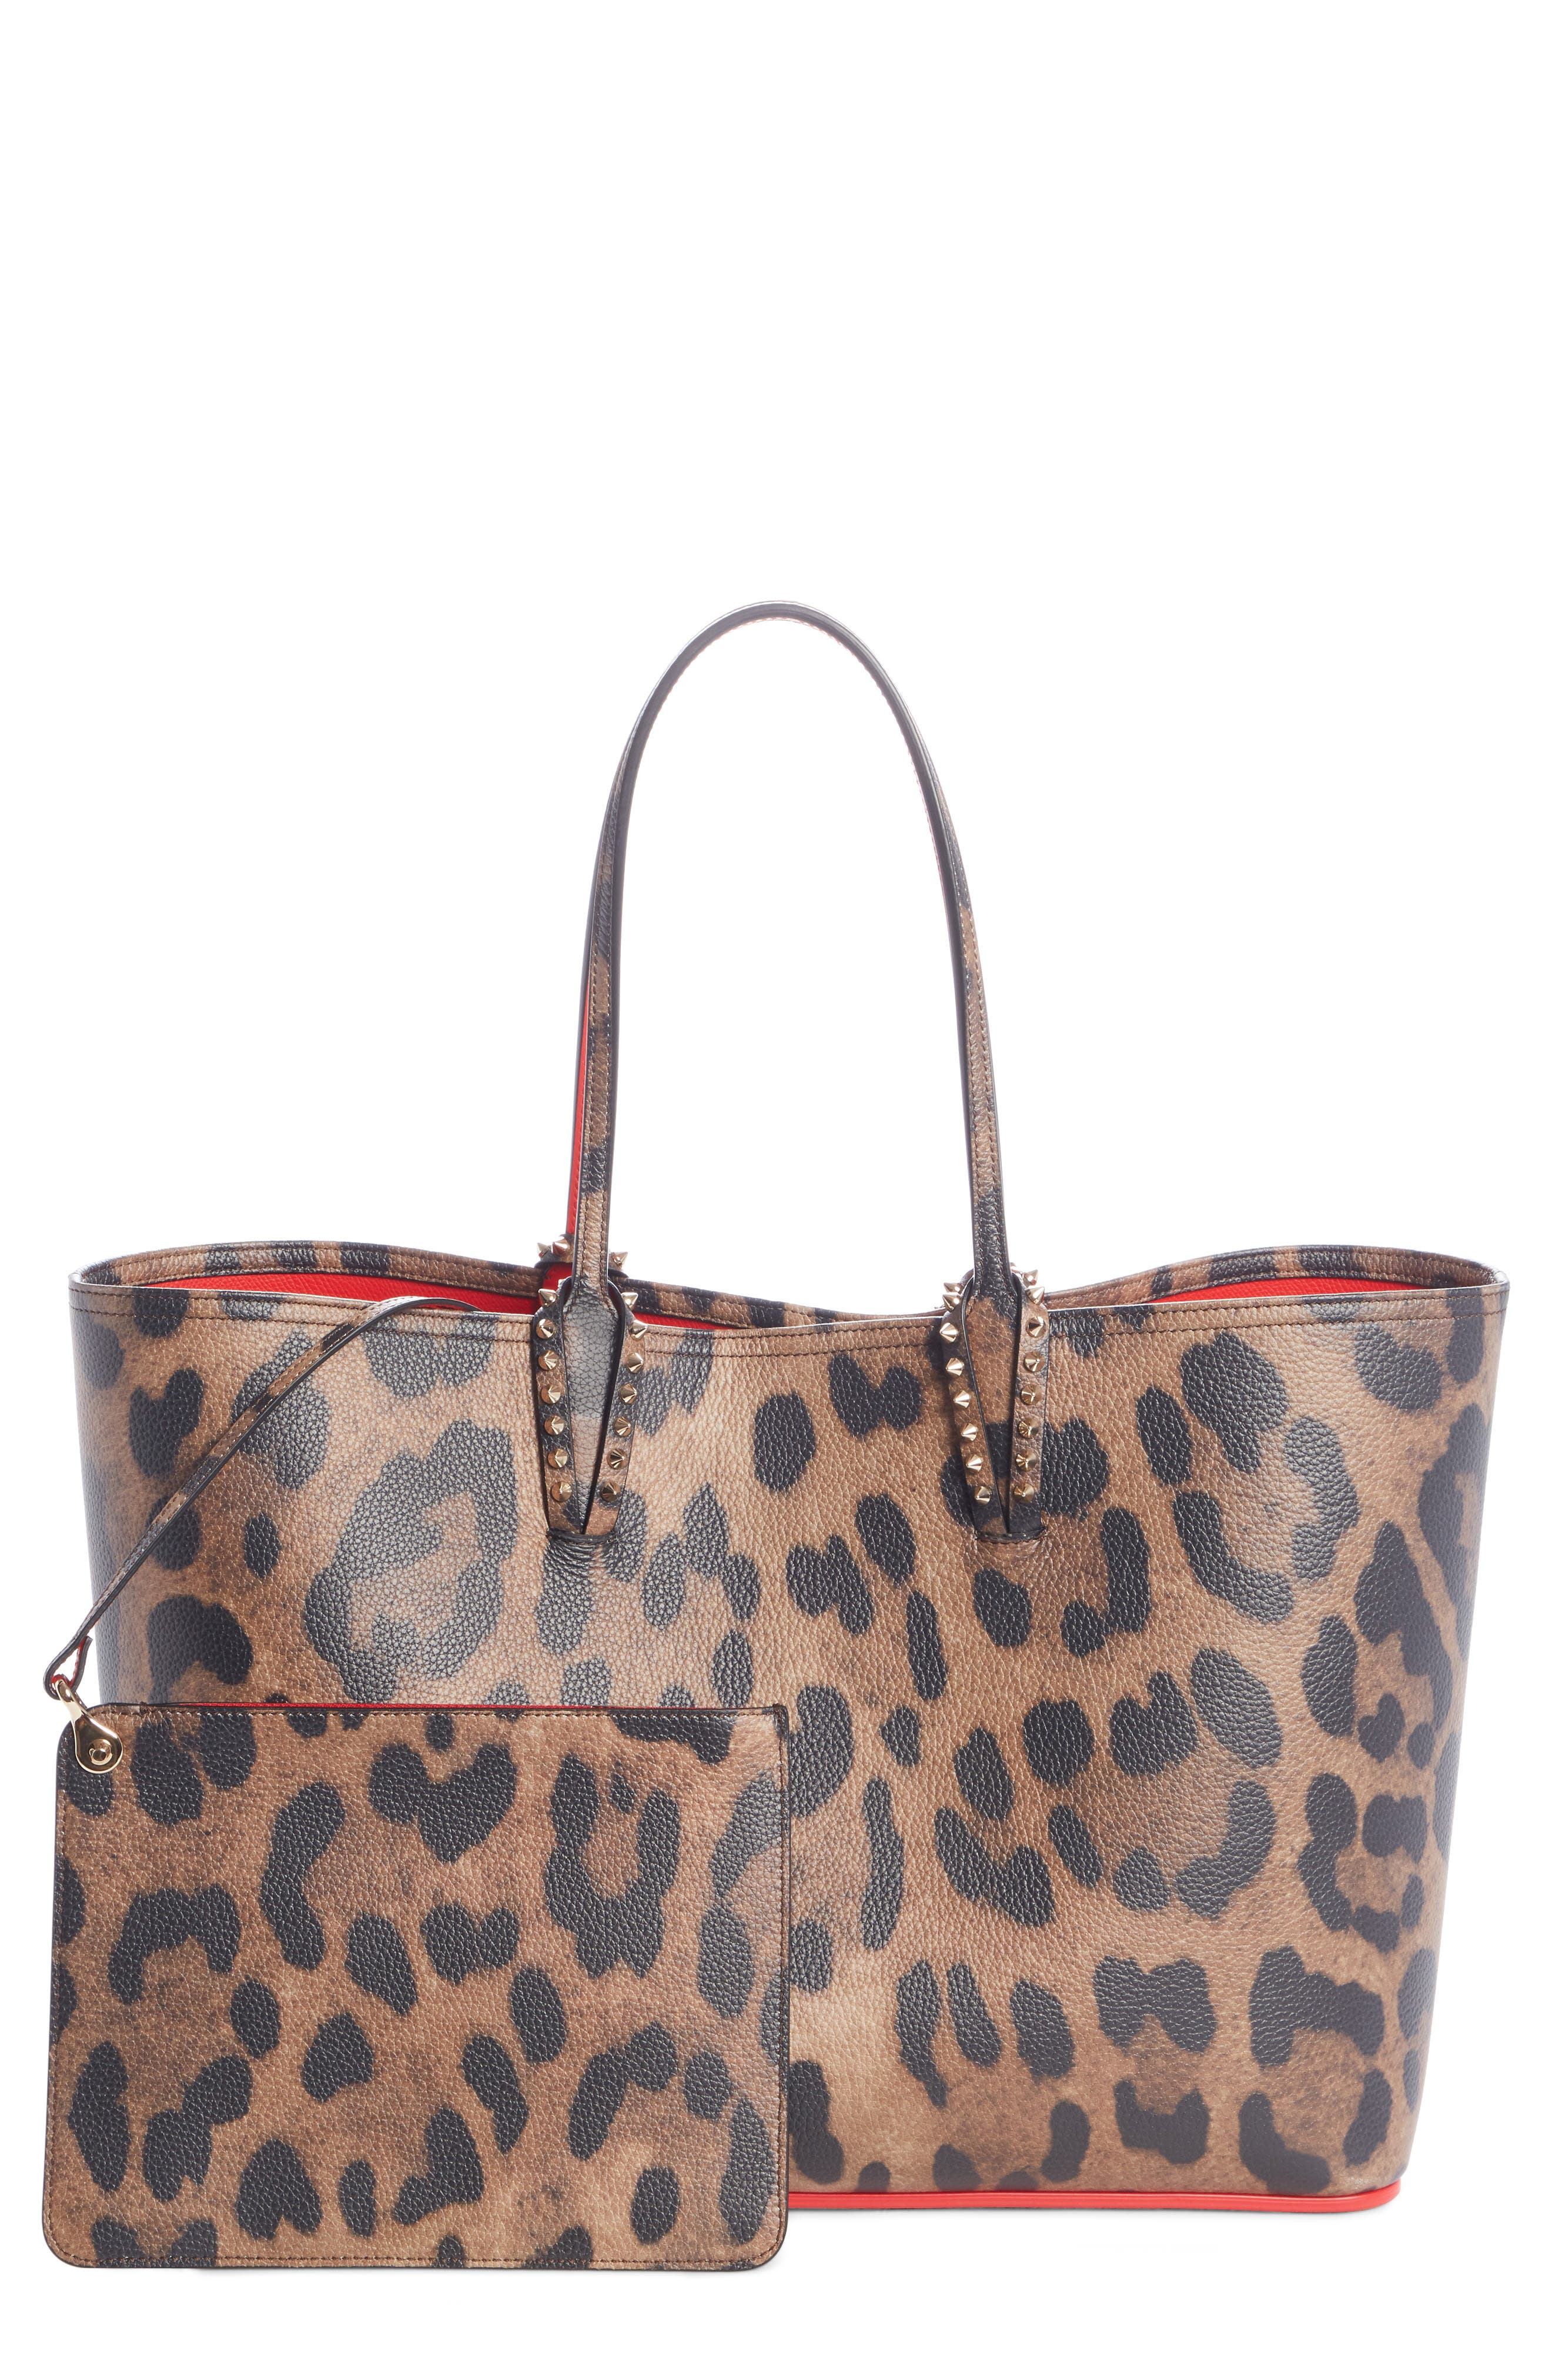 CHRISTIAN LOUBOUTIN,                             Large Cabata Leather Tote,                             Main thumbnail 1, color,                             BROWN